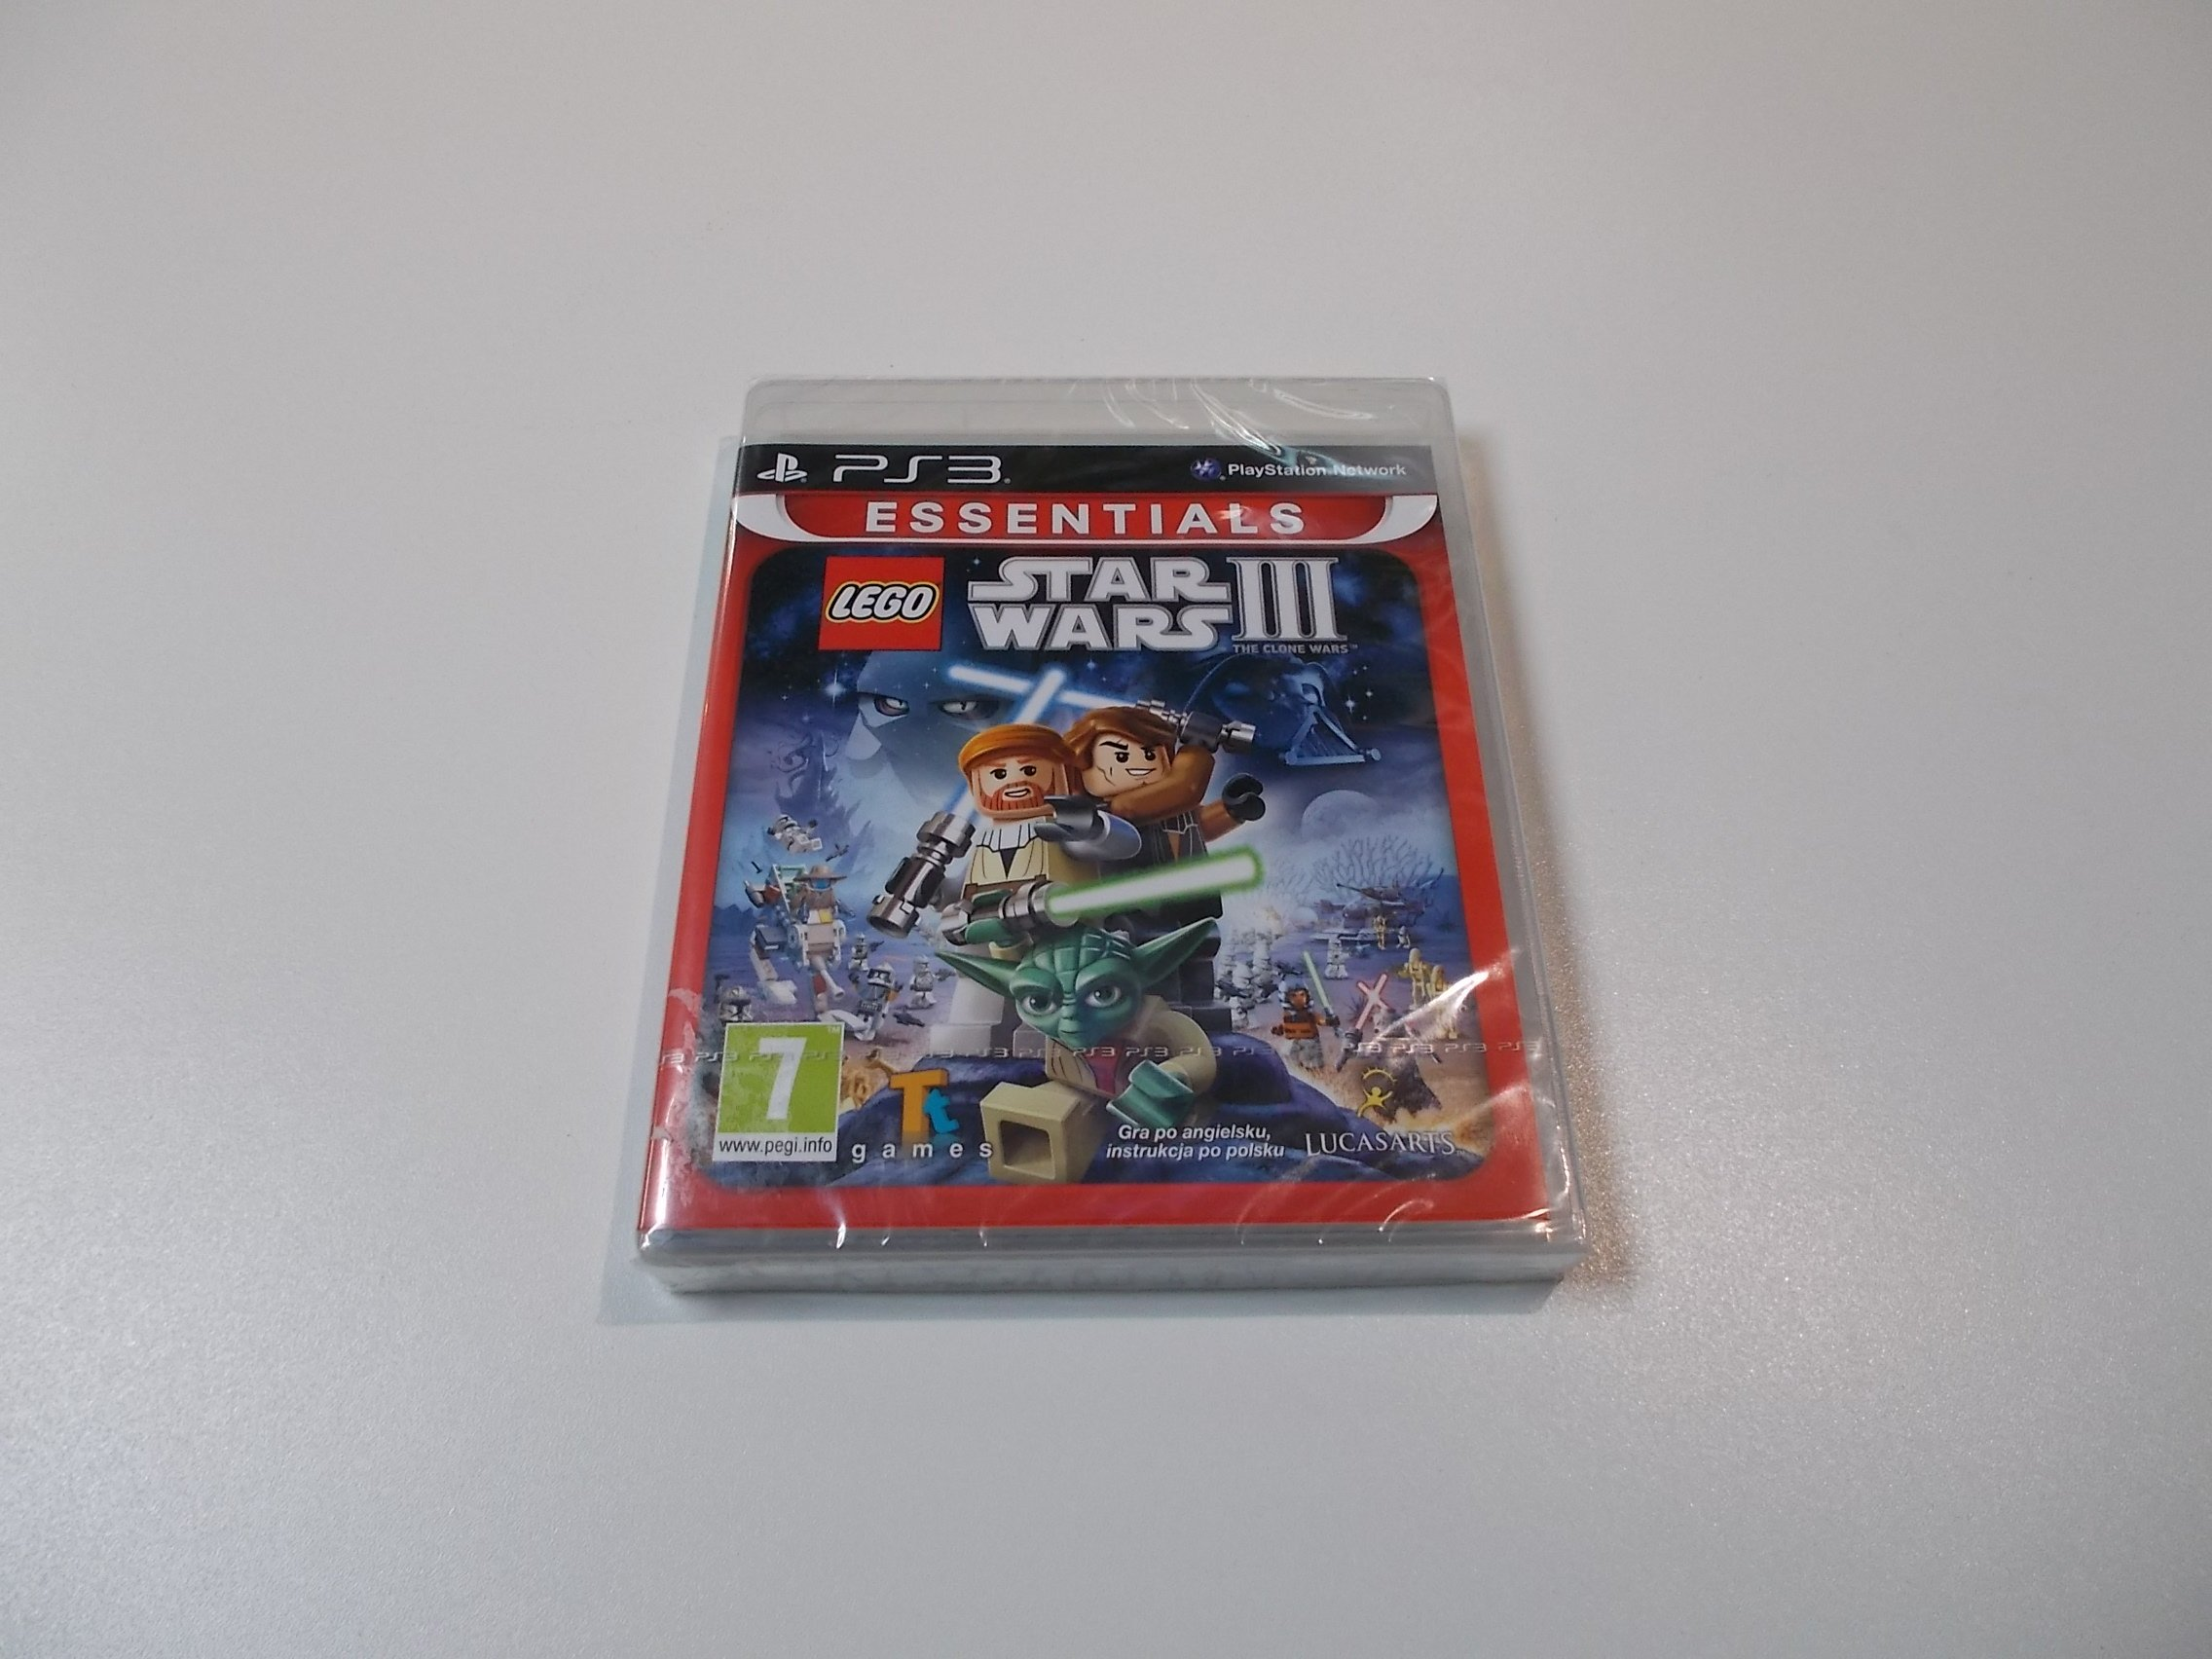 LEGO Star Wars III 3 the clone wars - GRA Ps3 - Sklep